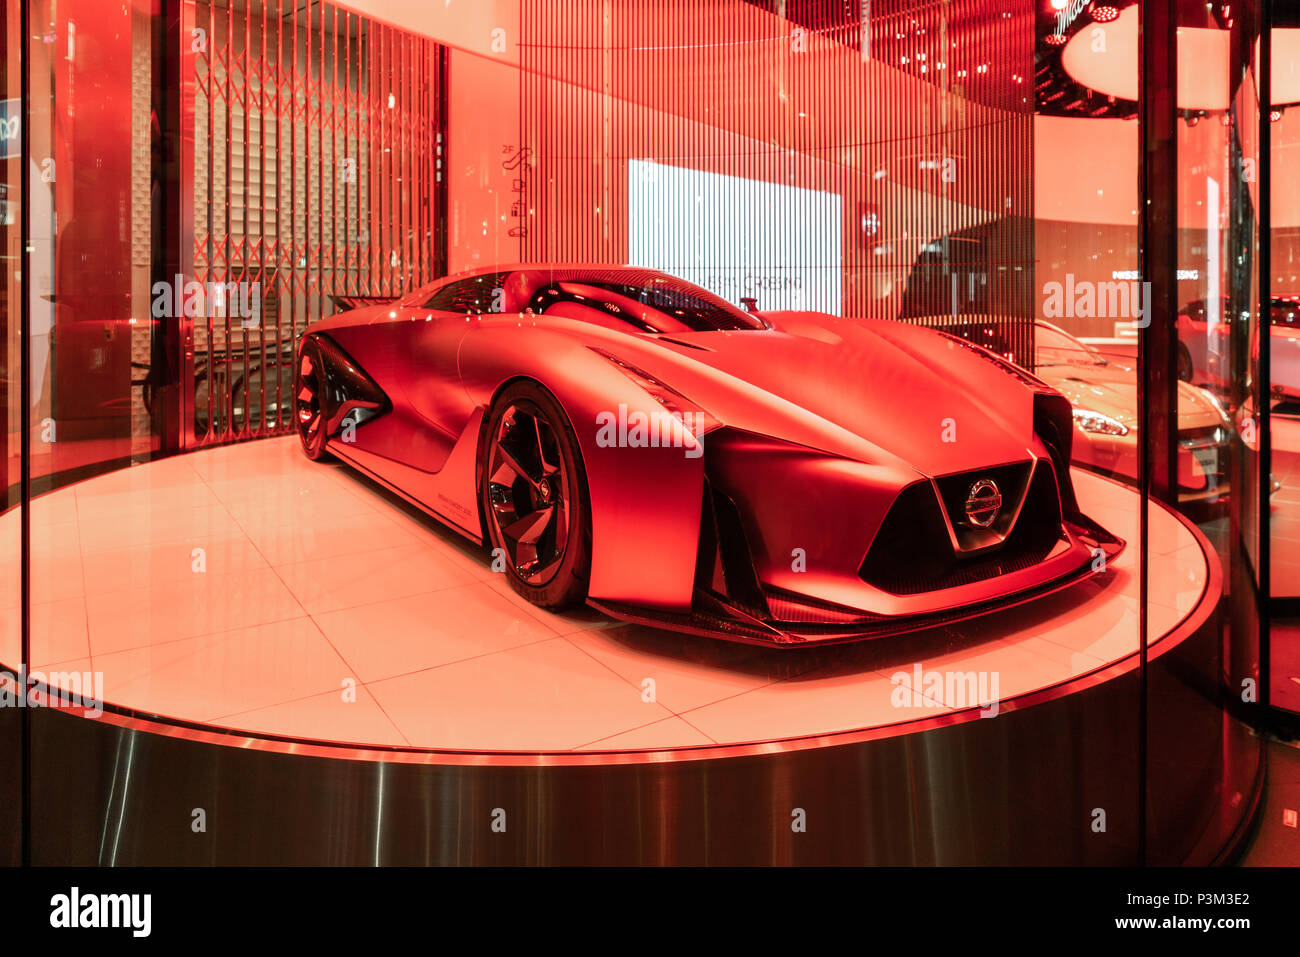 Nissan Concept sports car with red light - Stock Image